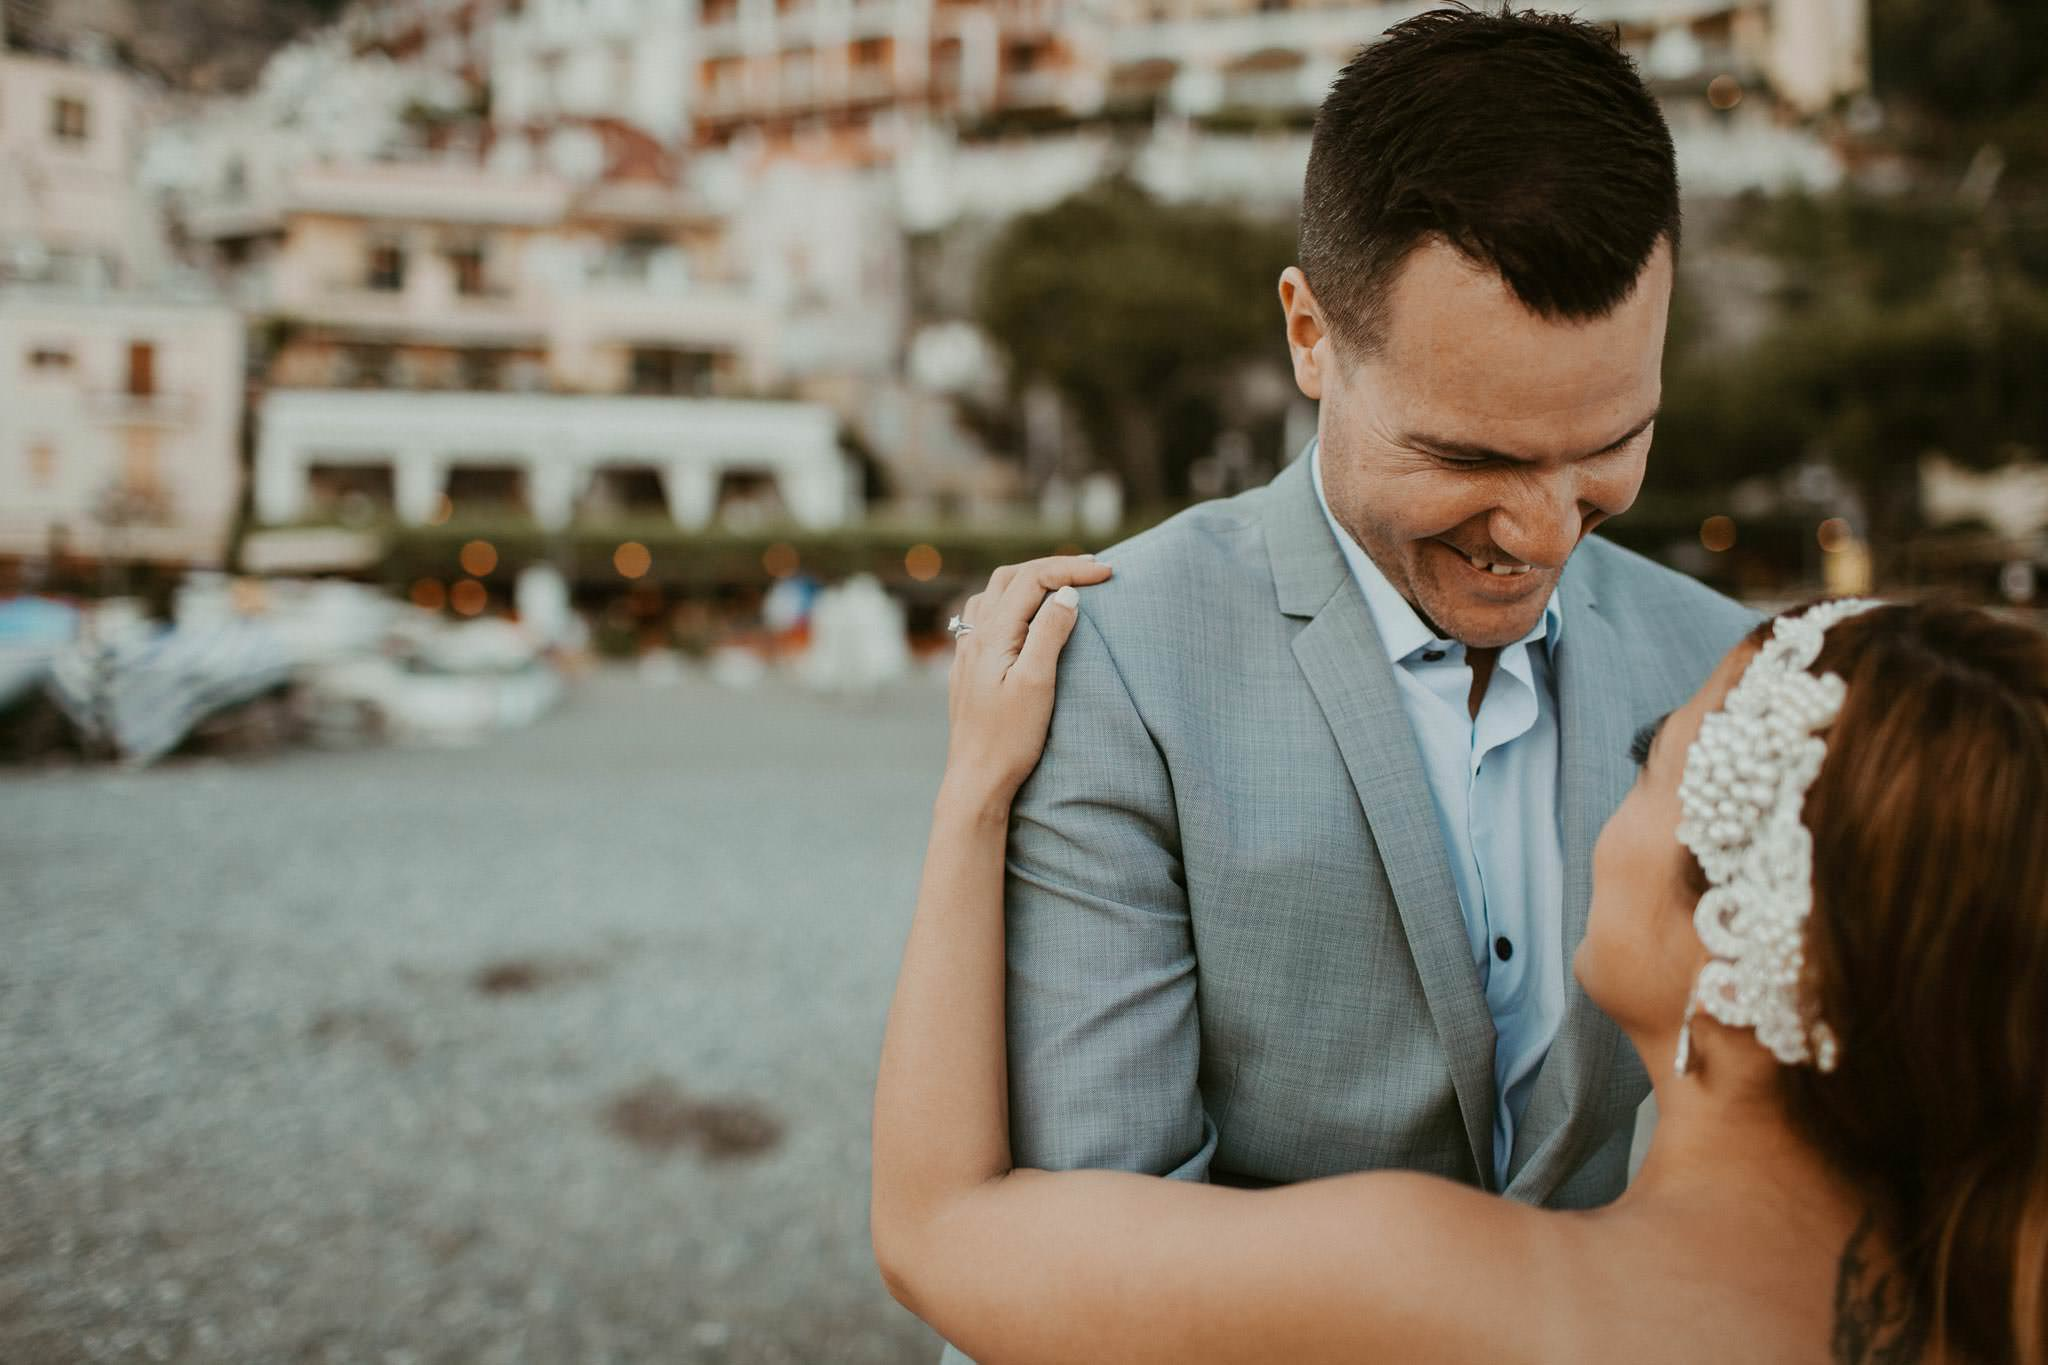 positano-wedding-photographer-118